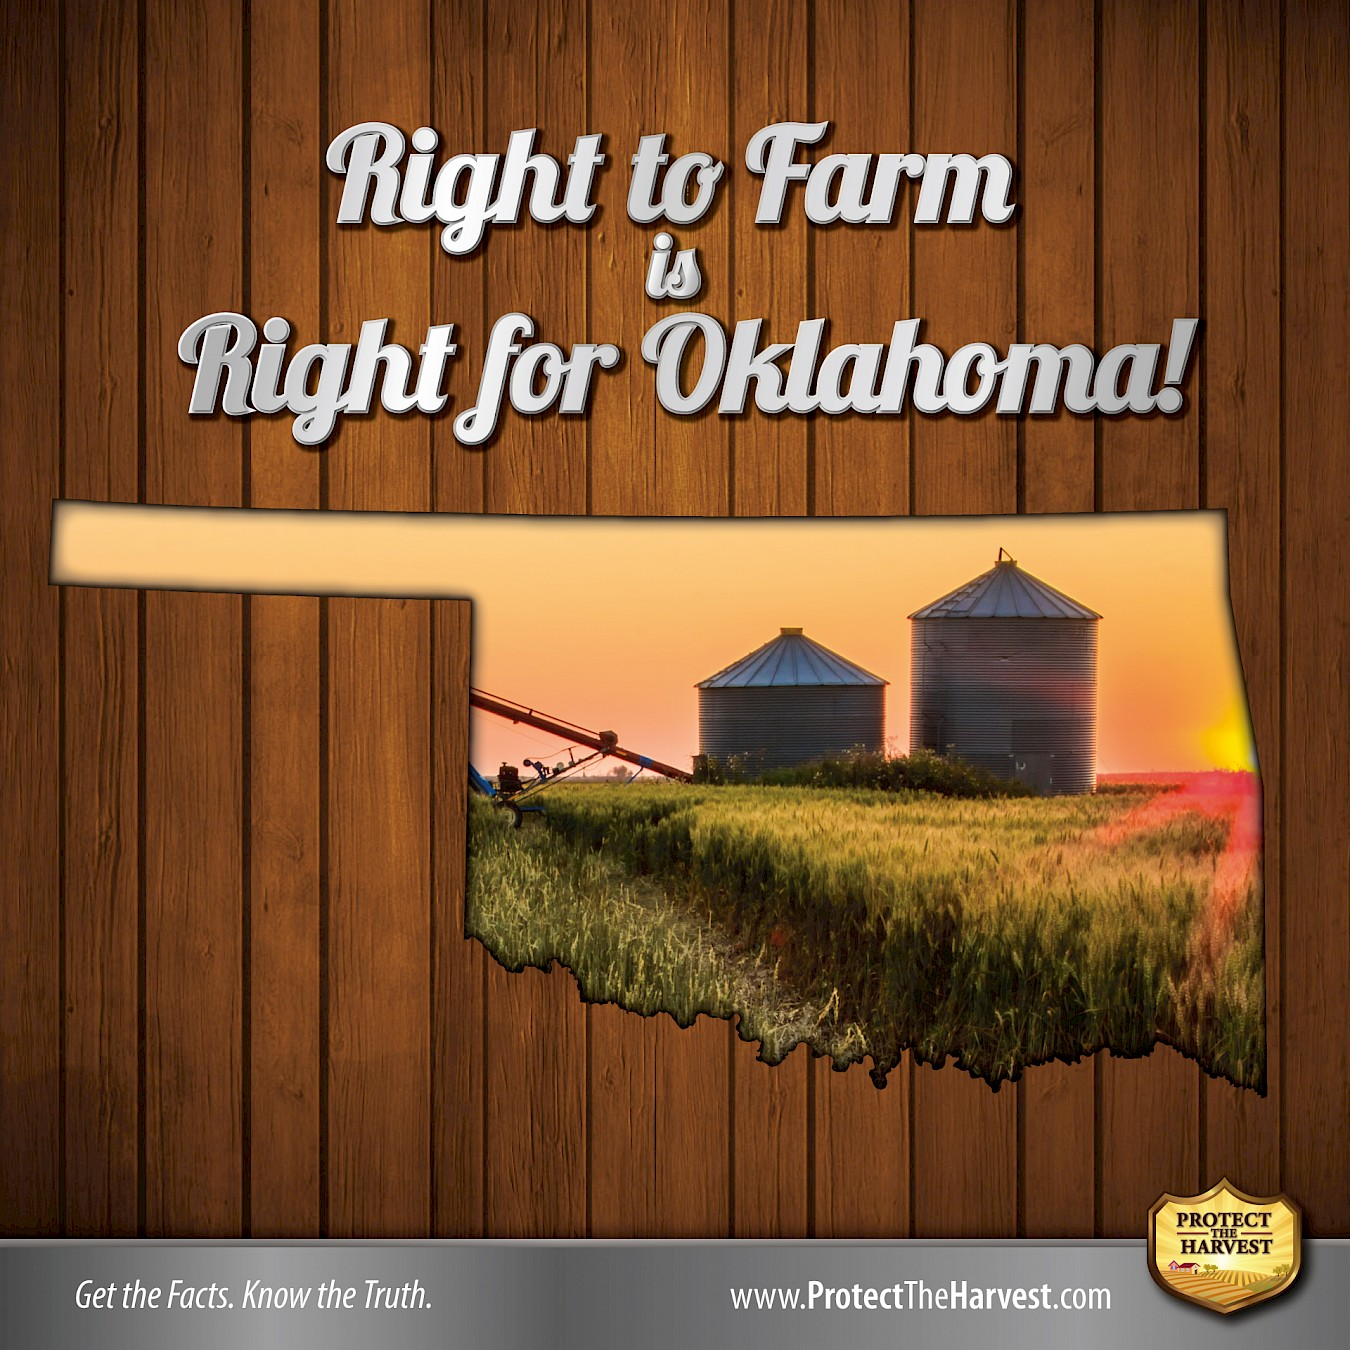 Oklahoma Right to Farm Amendment Clears First Hurdle